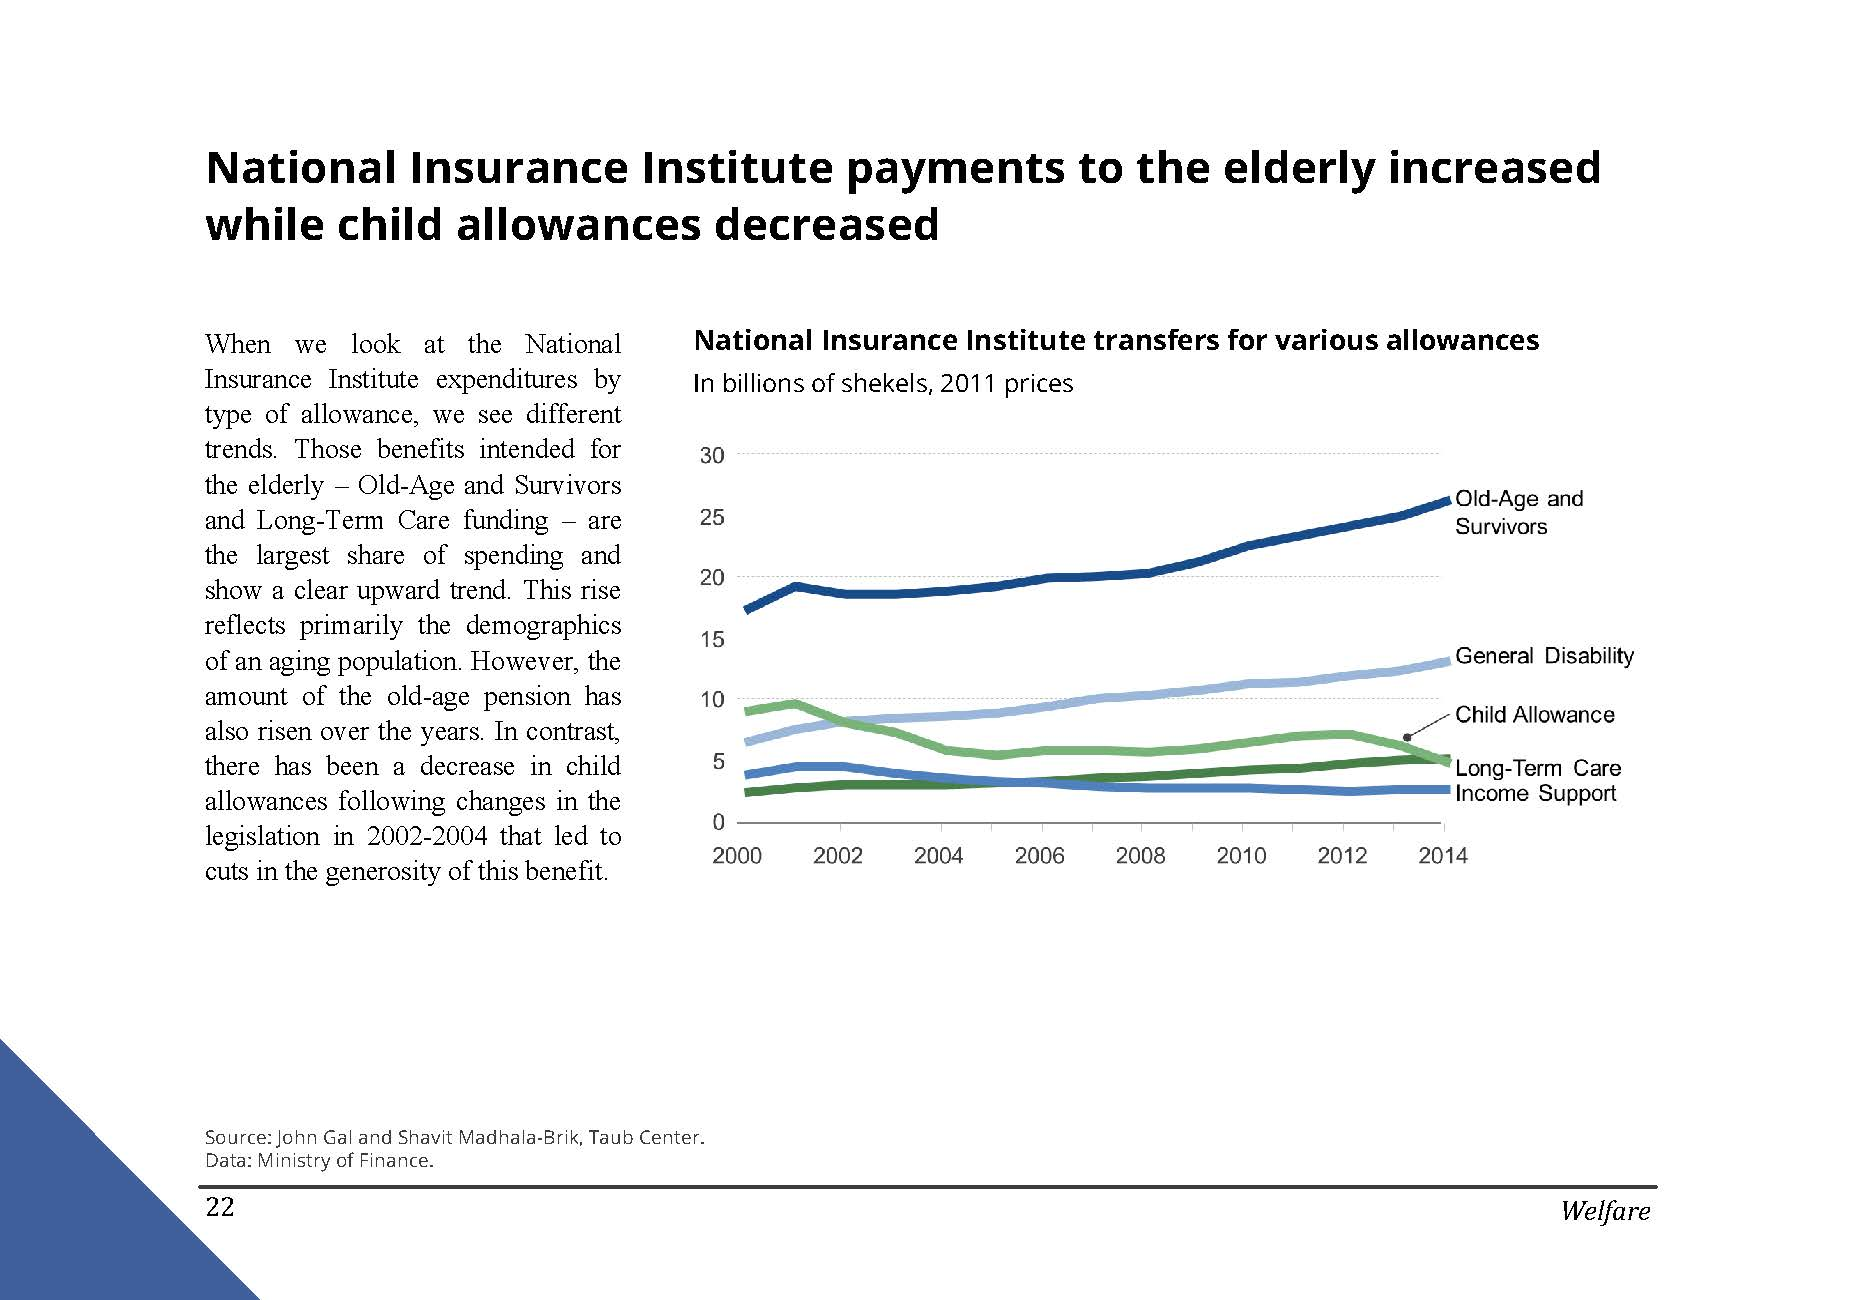 National Insurance Institute payments to the elderly increased while child allowances decreased in Israel